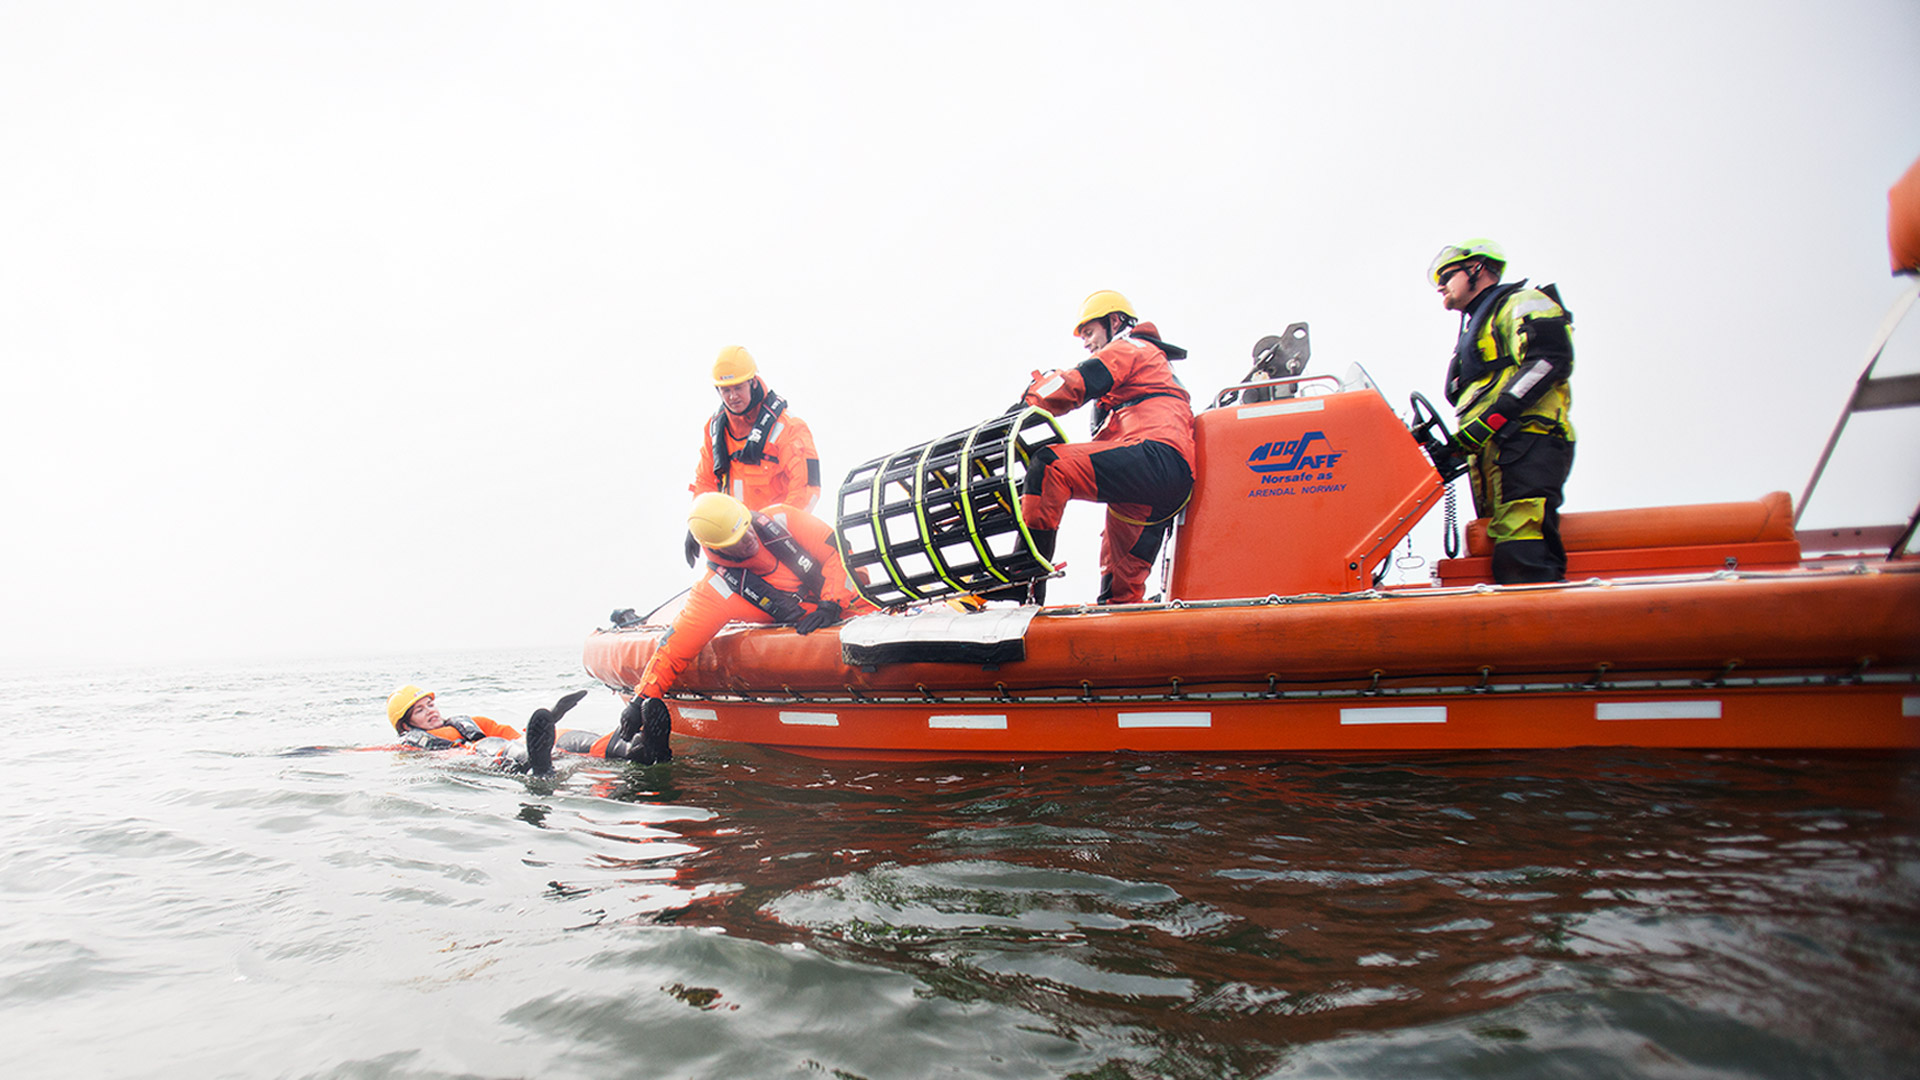 Survival course participants demonstrate rescuing a colleague at open sea. Photo: Lars Thornblad